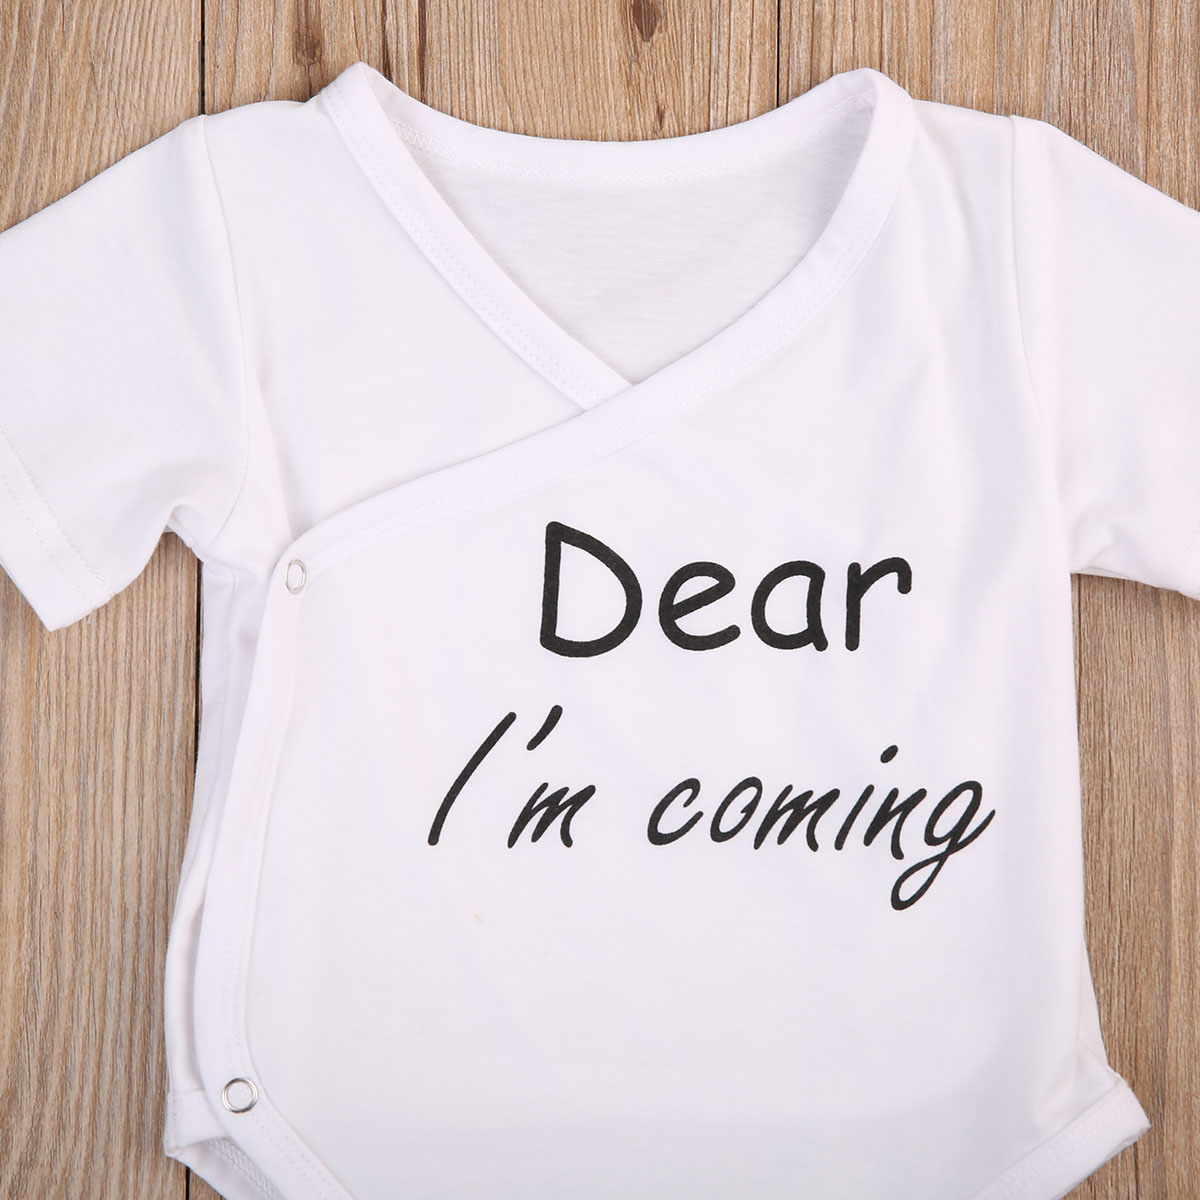 Newborn Infant Baby Boys Girls Rompers Jumpsuit Clothes Outfits Sunsuit